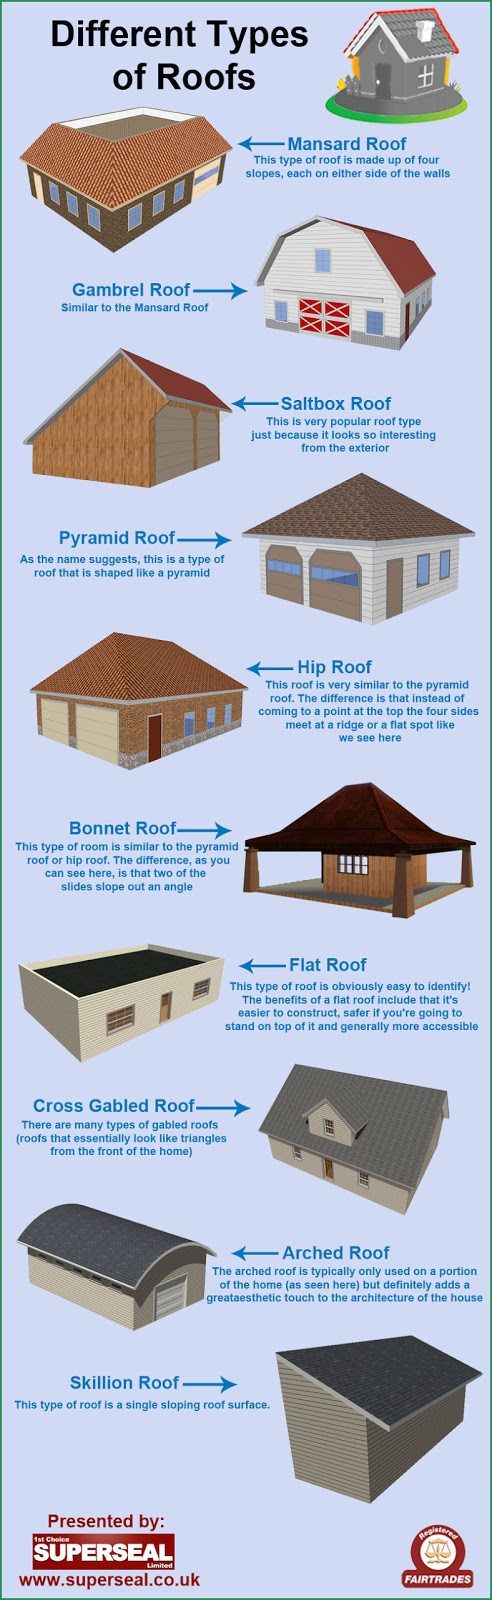 All seasons roofing in utah different types of roofs for Different types of roofing materials